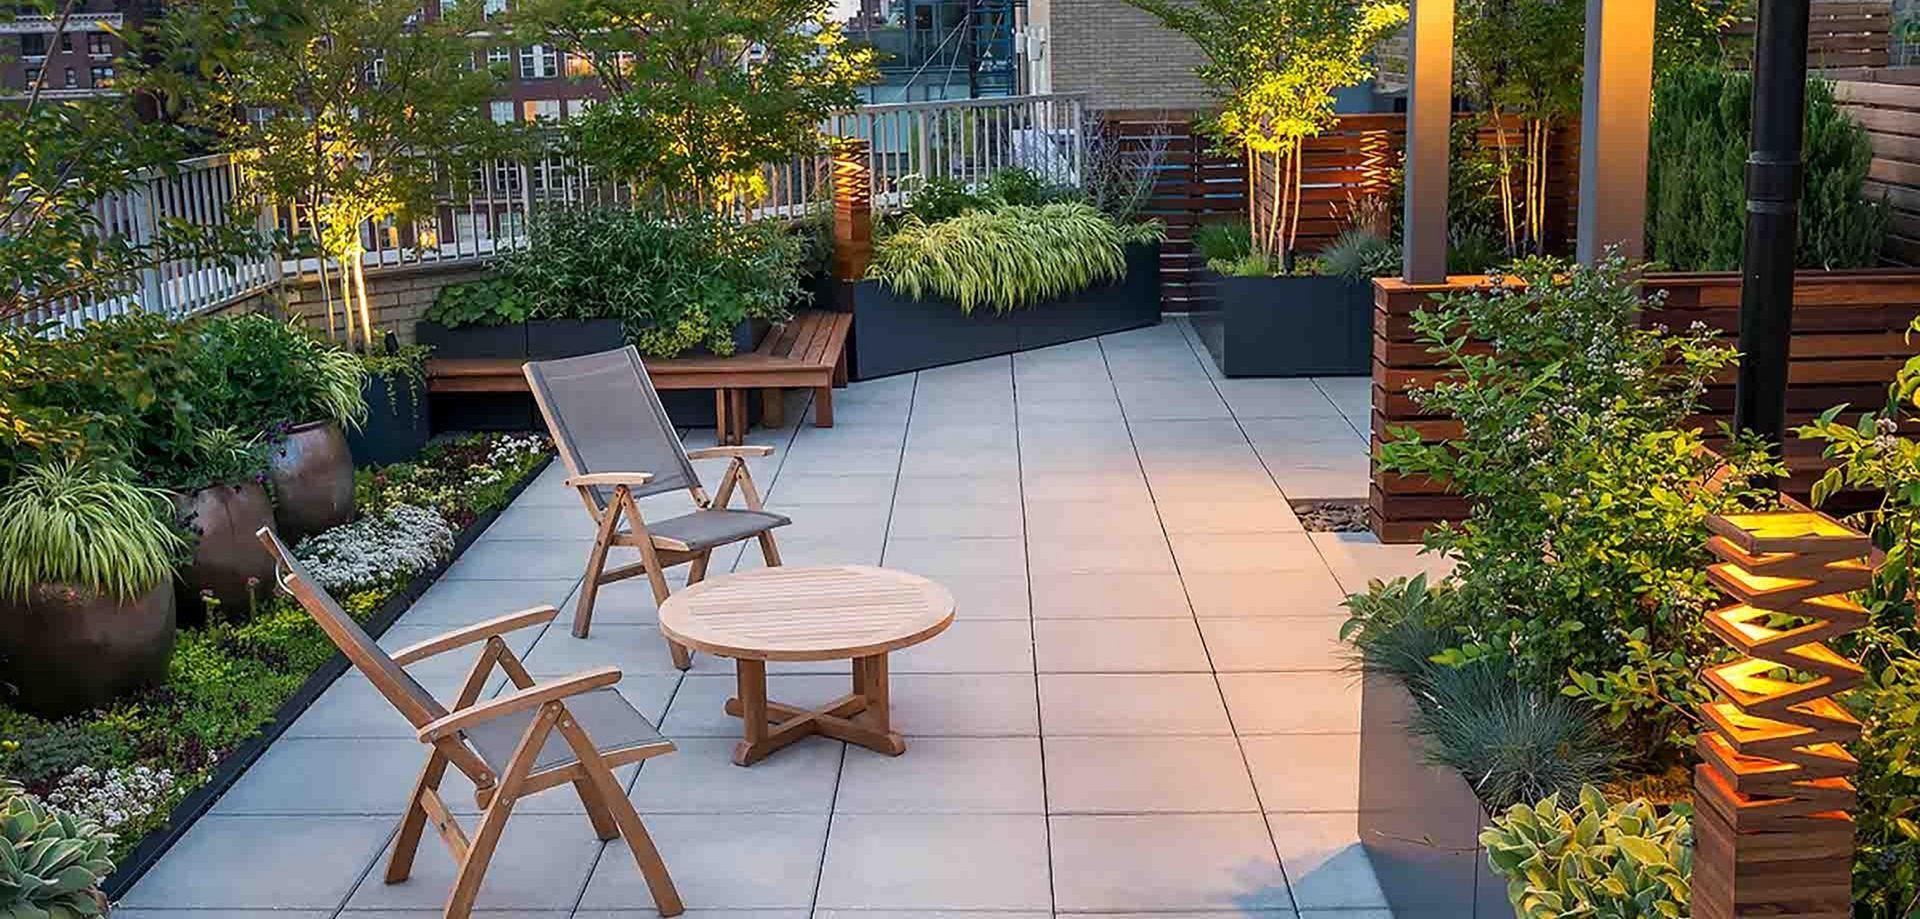 Easy Terrace Flooring Backyard Stone Ideas Teracee throughout 11 Genius Ways How to Build Backyard Stone Ideas